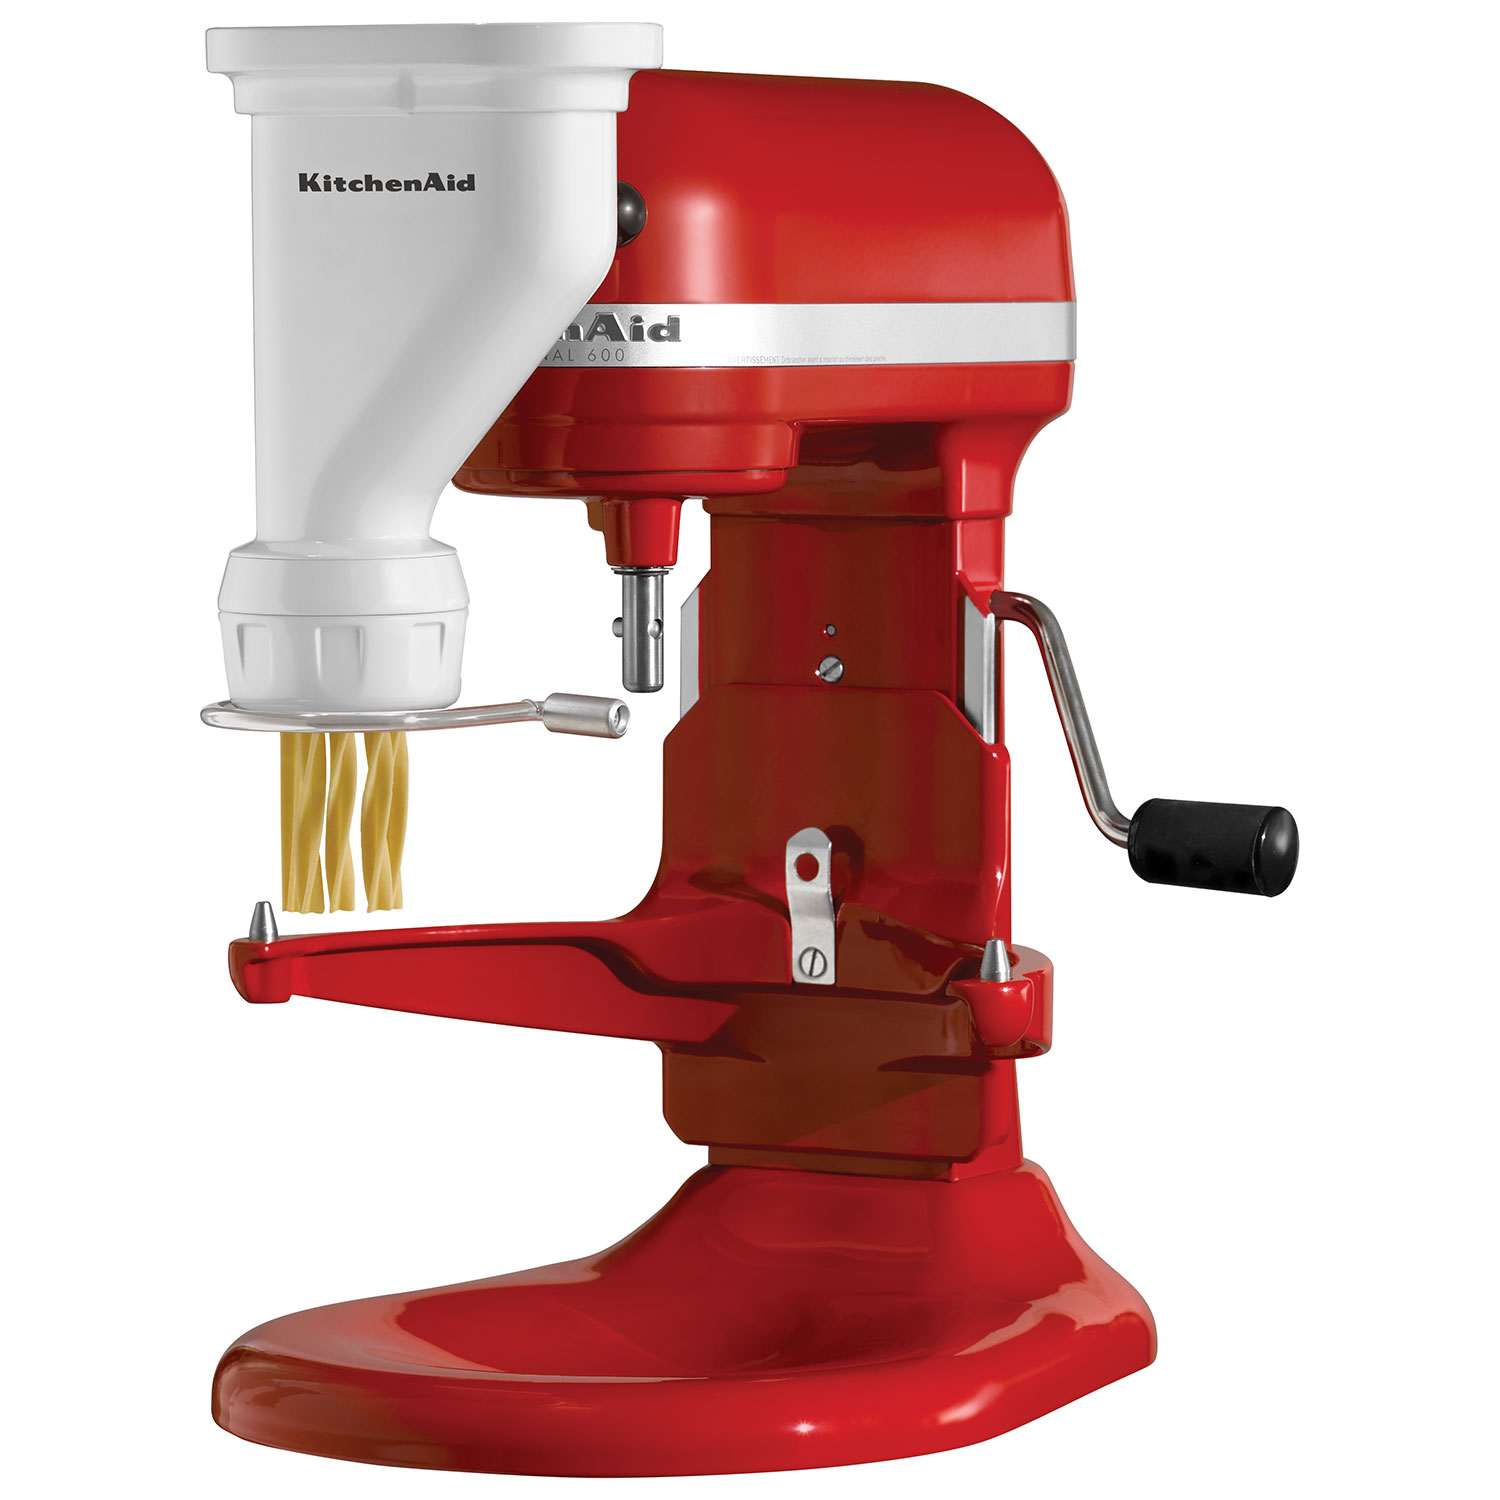 Pasta Roller Attachments for Most KitchenAid Stand Mixers: Make homemade pasta with your KitchenAid stand mixer using these pasta roller attachments. Their durable and versatile design offers a variety of ways to make your favorite pasta dishes.